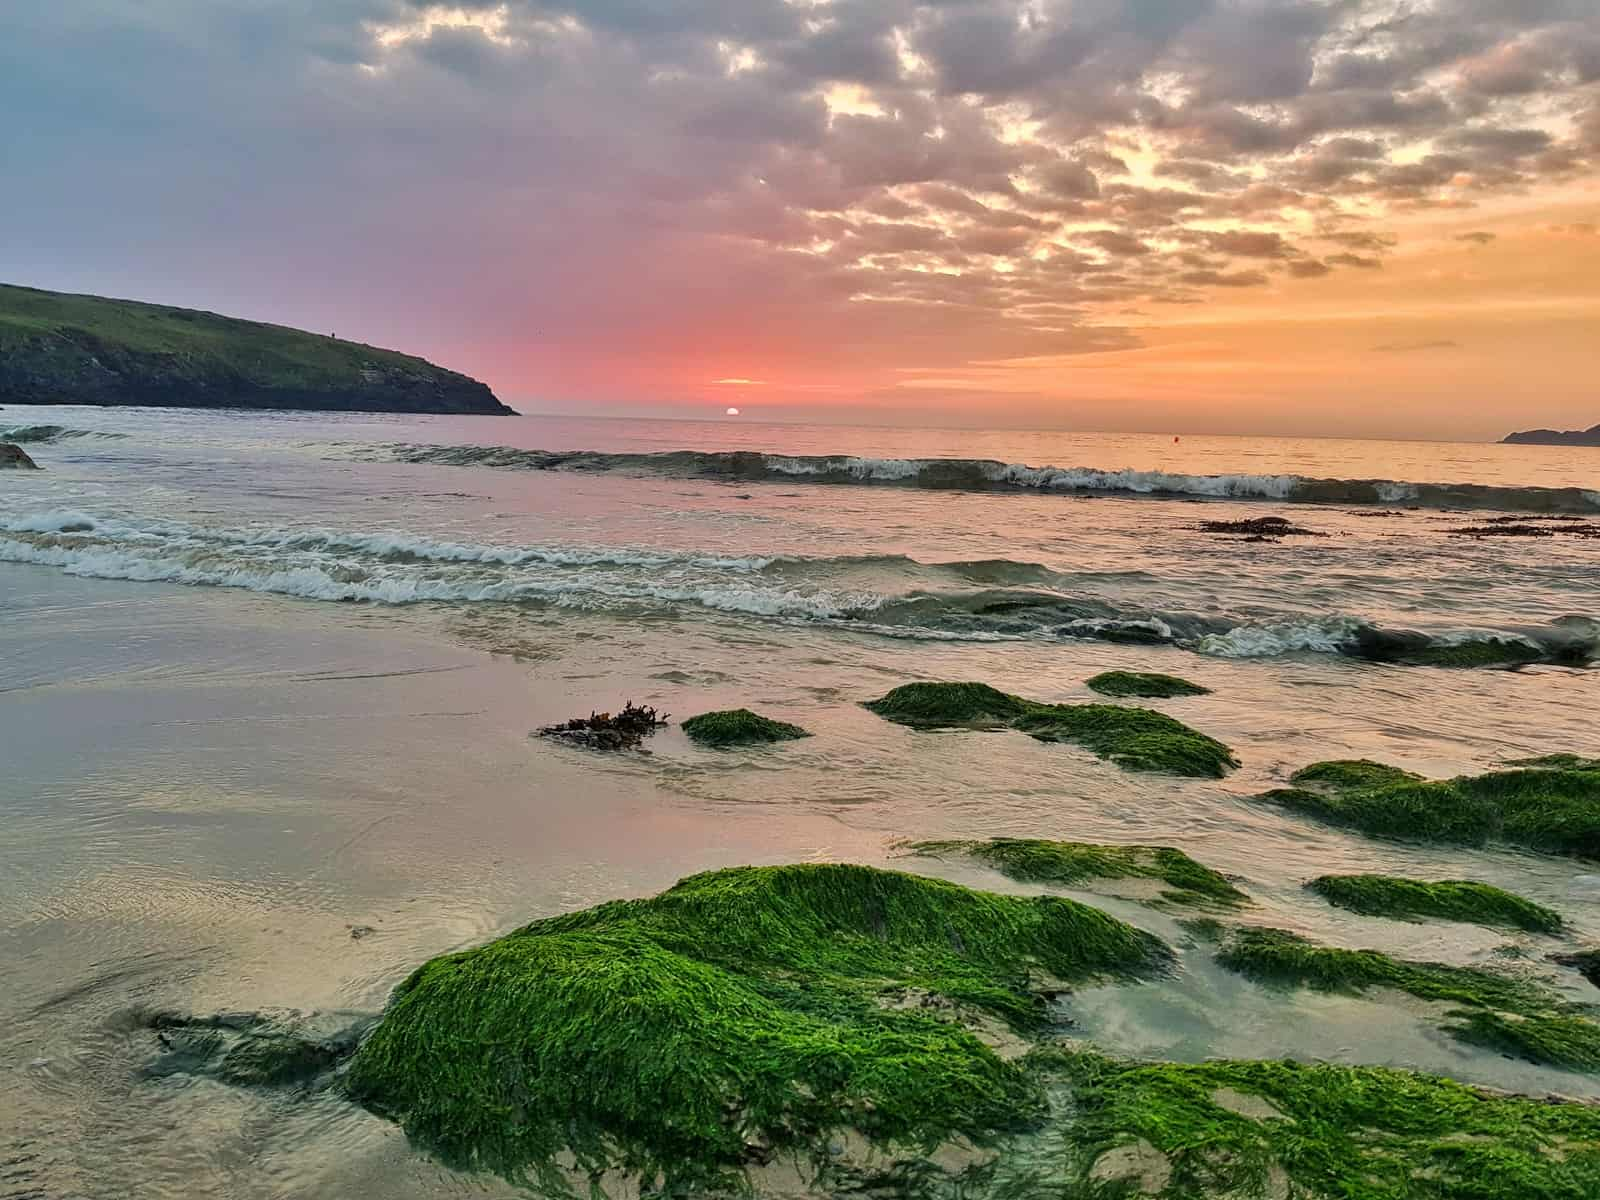 An open water swimming spot in Pembrokeshire - a beach at sunset with rocks covered in seaweed in foreground